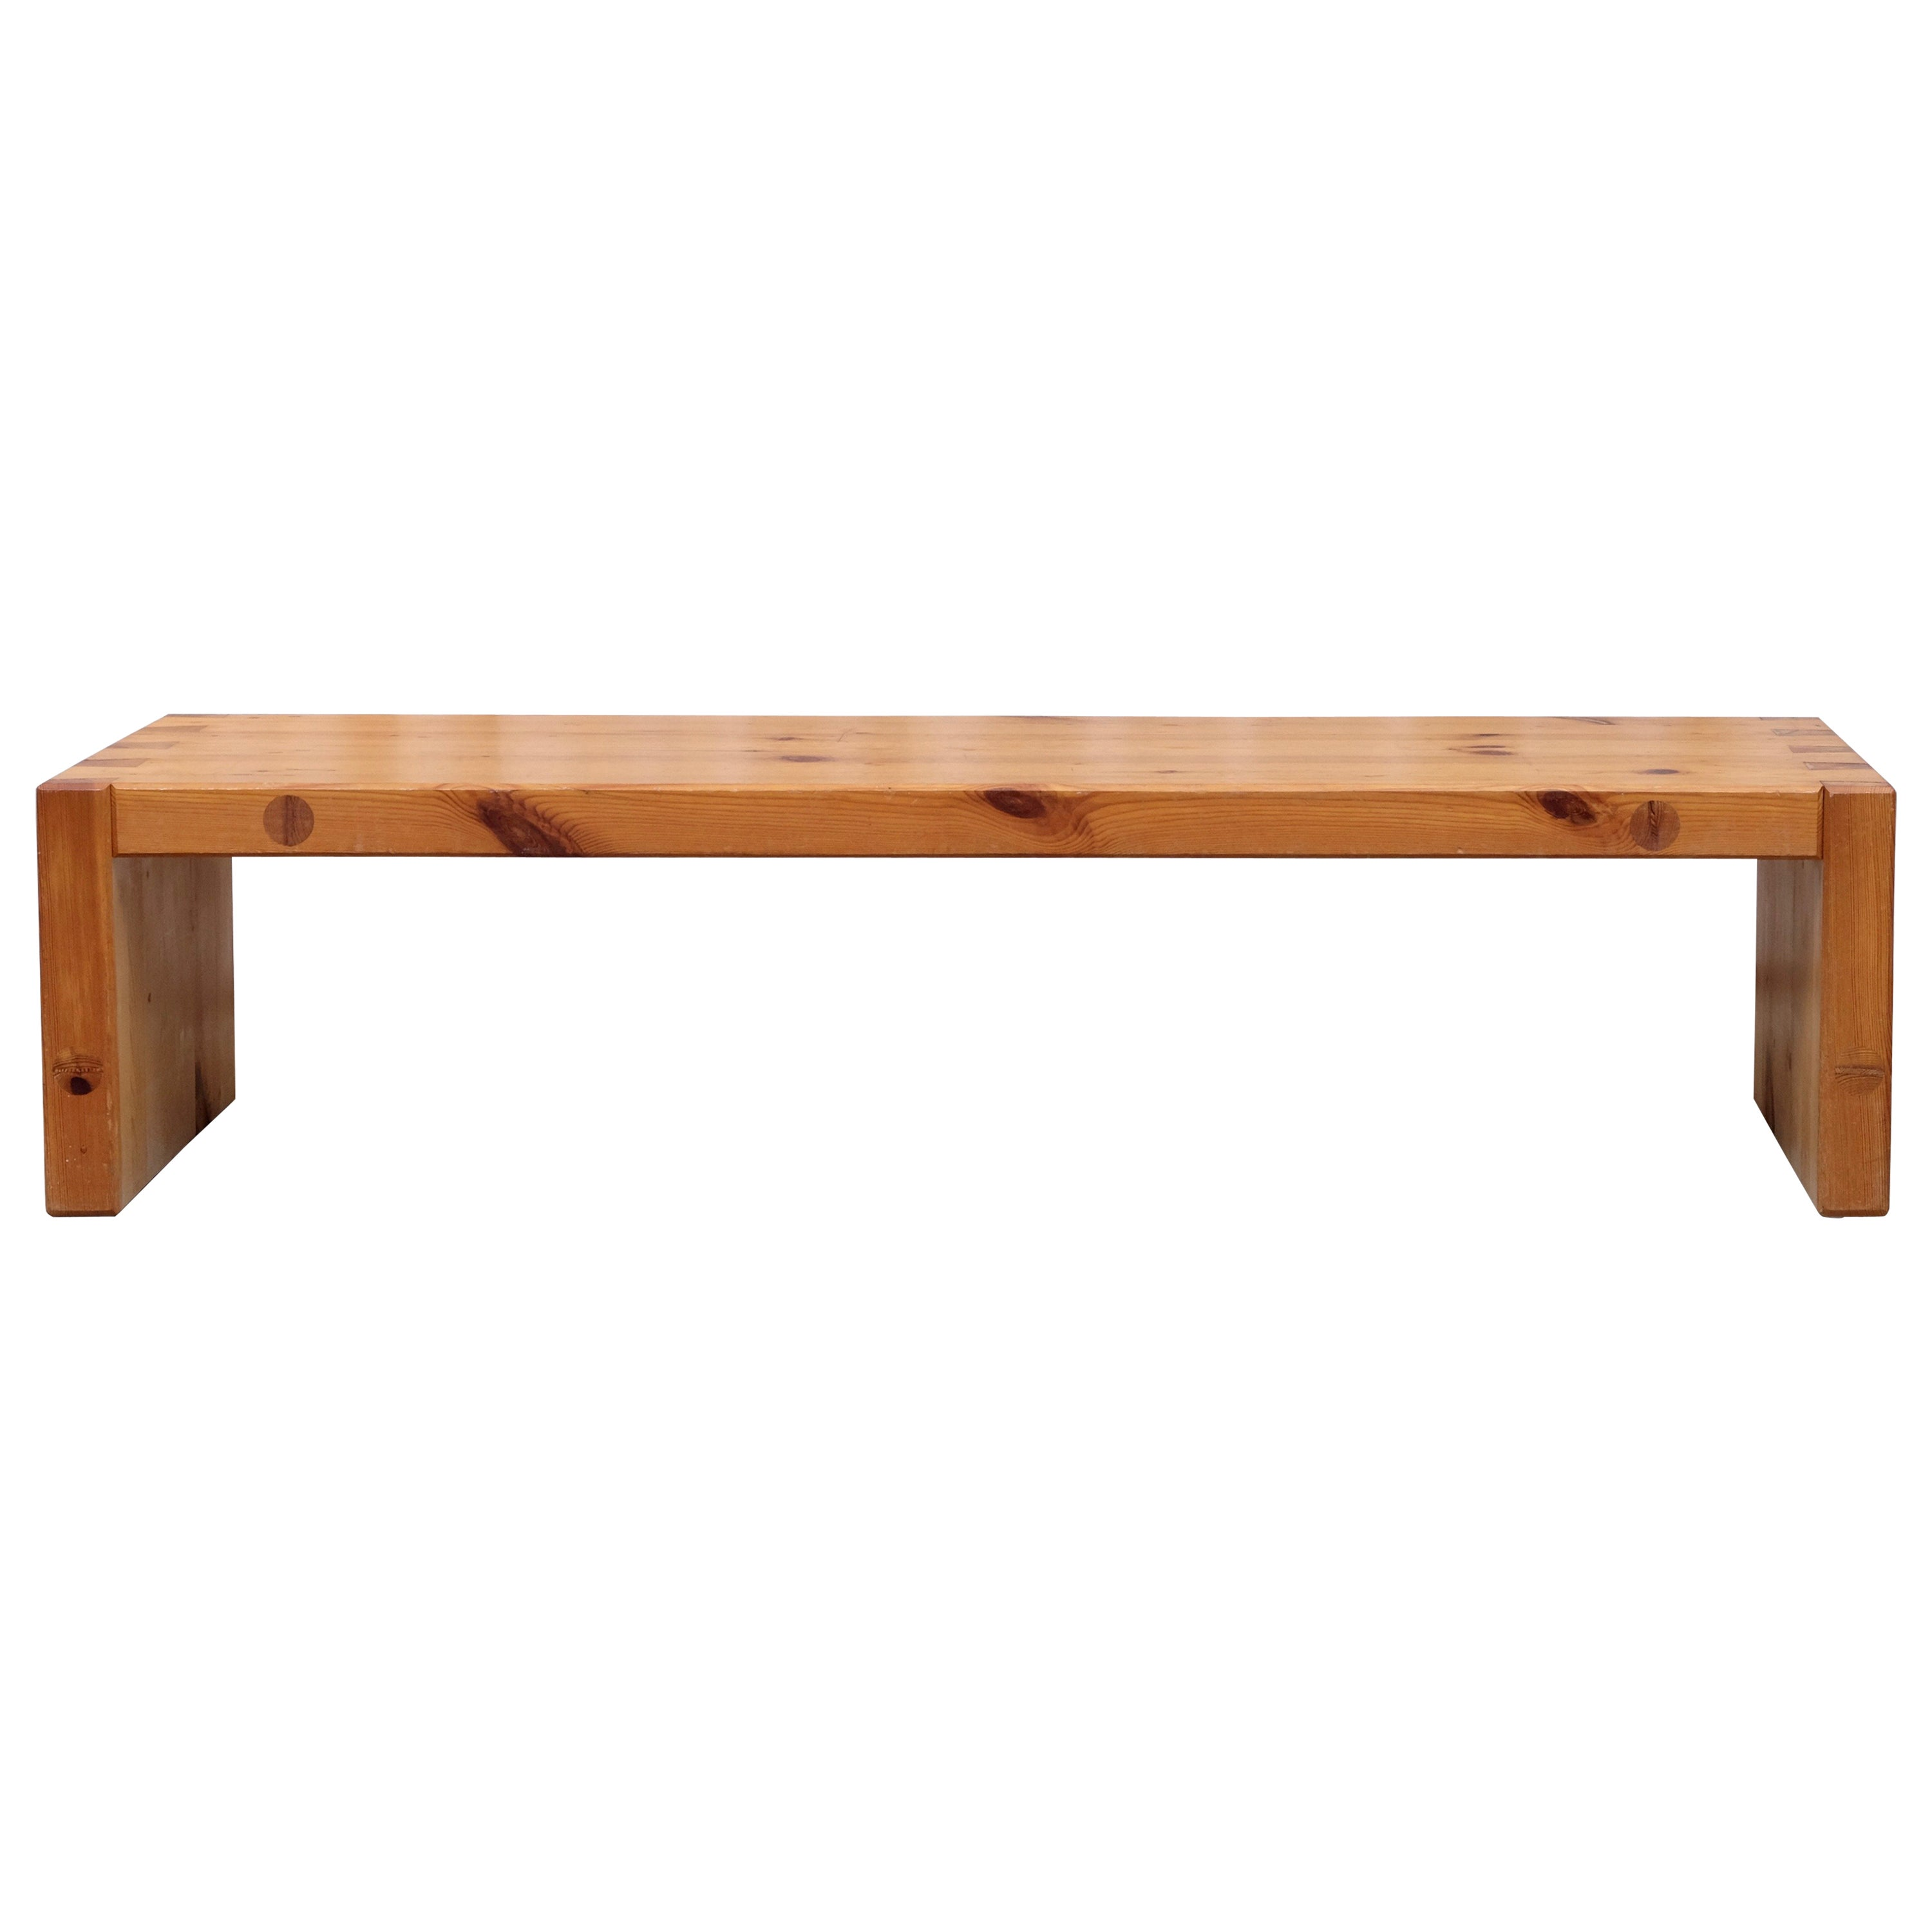 Roland Wilhelmsson Table / Bench in Pine, Produced in Sweden, 1960s